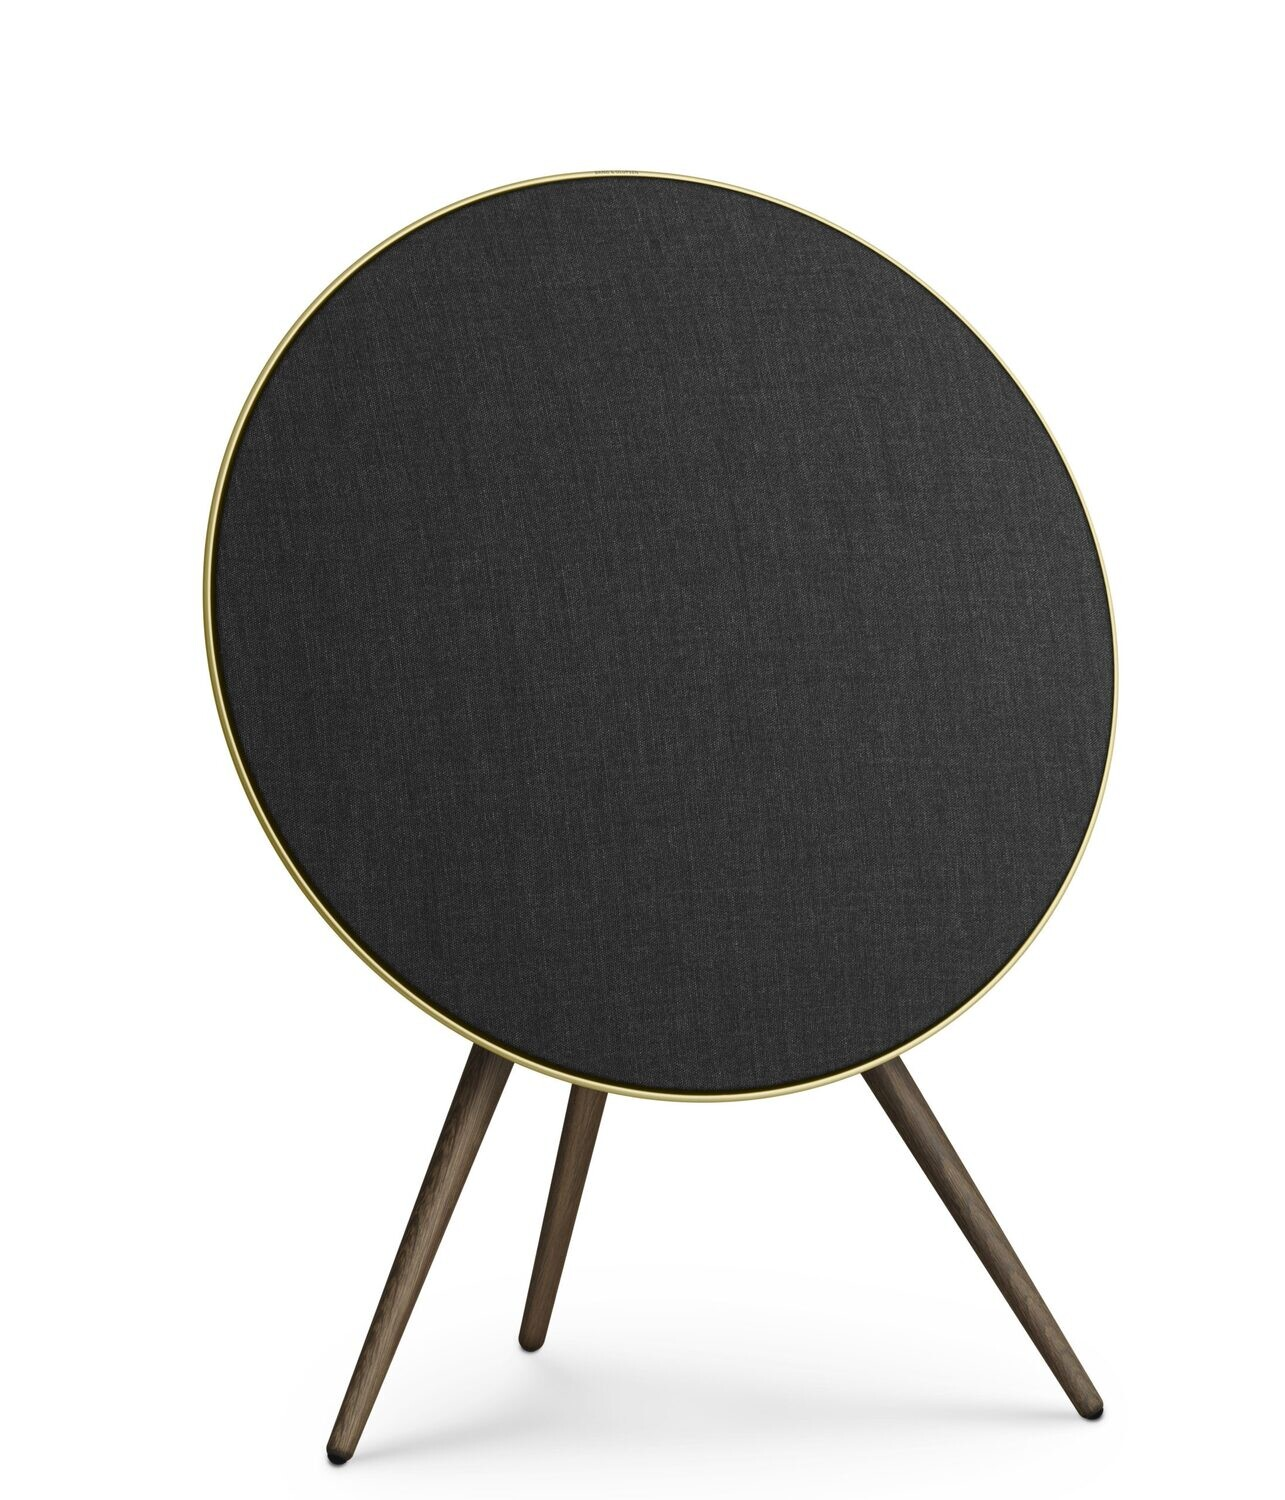 BEOPLAY A9 - Brass Tone